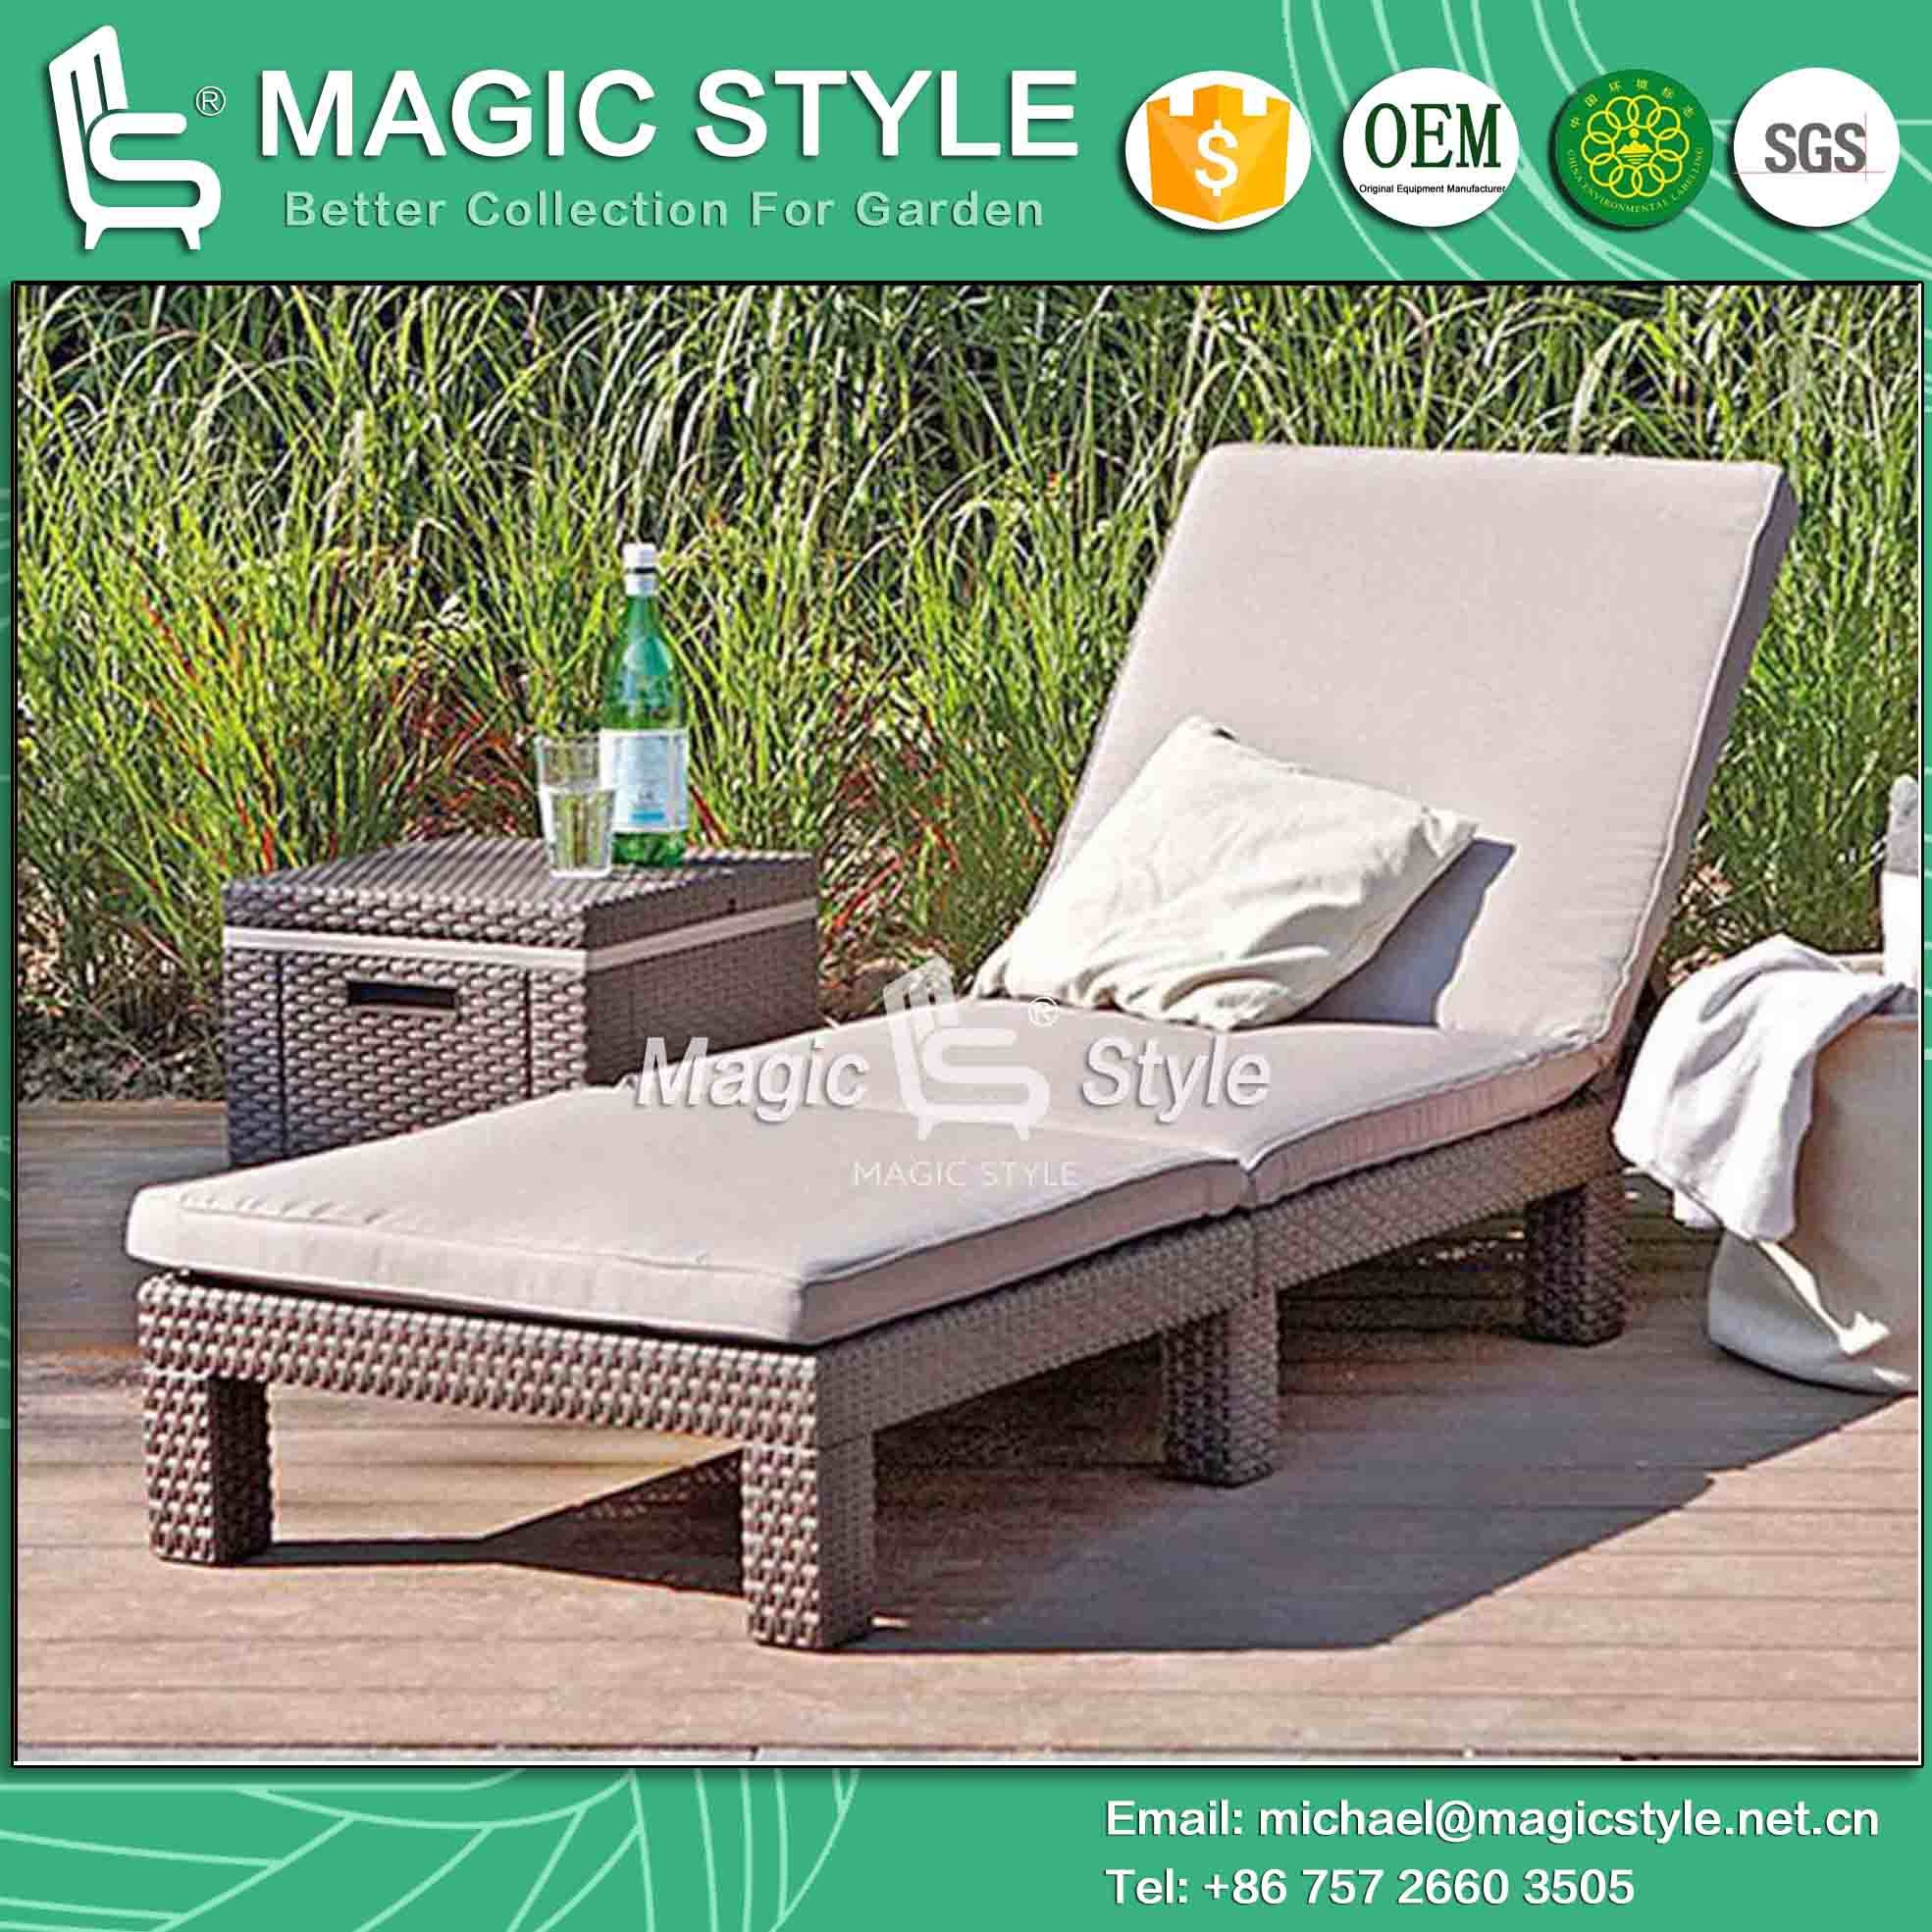 walmart mix ideas swing architecture bar sale cushions wicker patio outdoor size costco furniture designs design diy bed with mattress daybed for chair plans beds canopy full